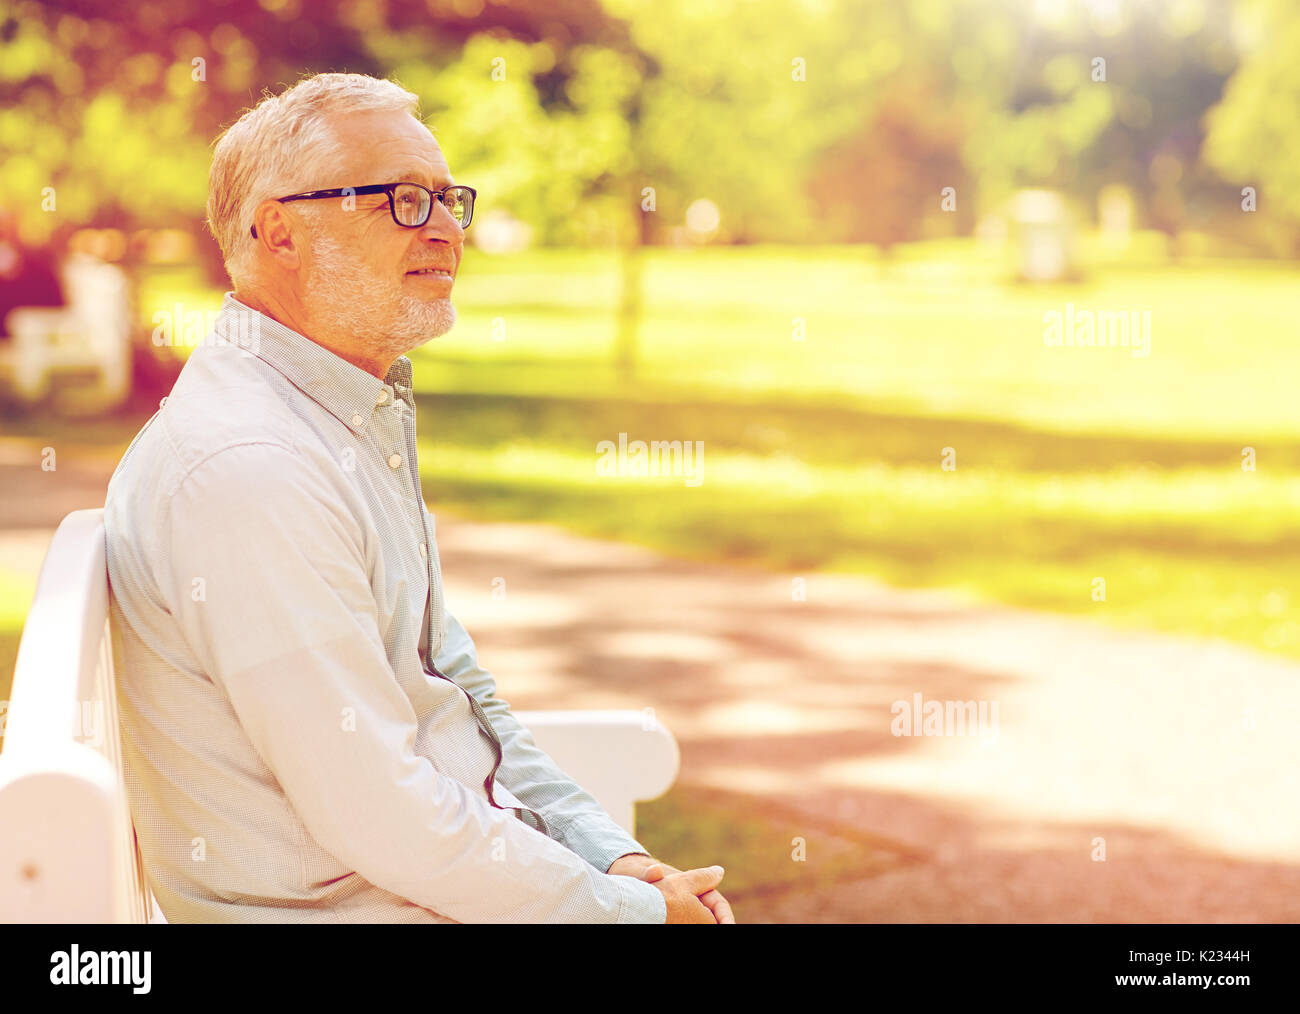 3d7a8d59c8ebc Old Man Bench Stock Photos   Old Man Bench Stock Images - Page 38 ...